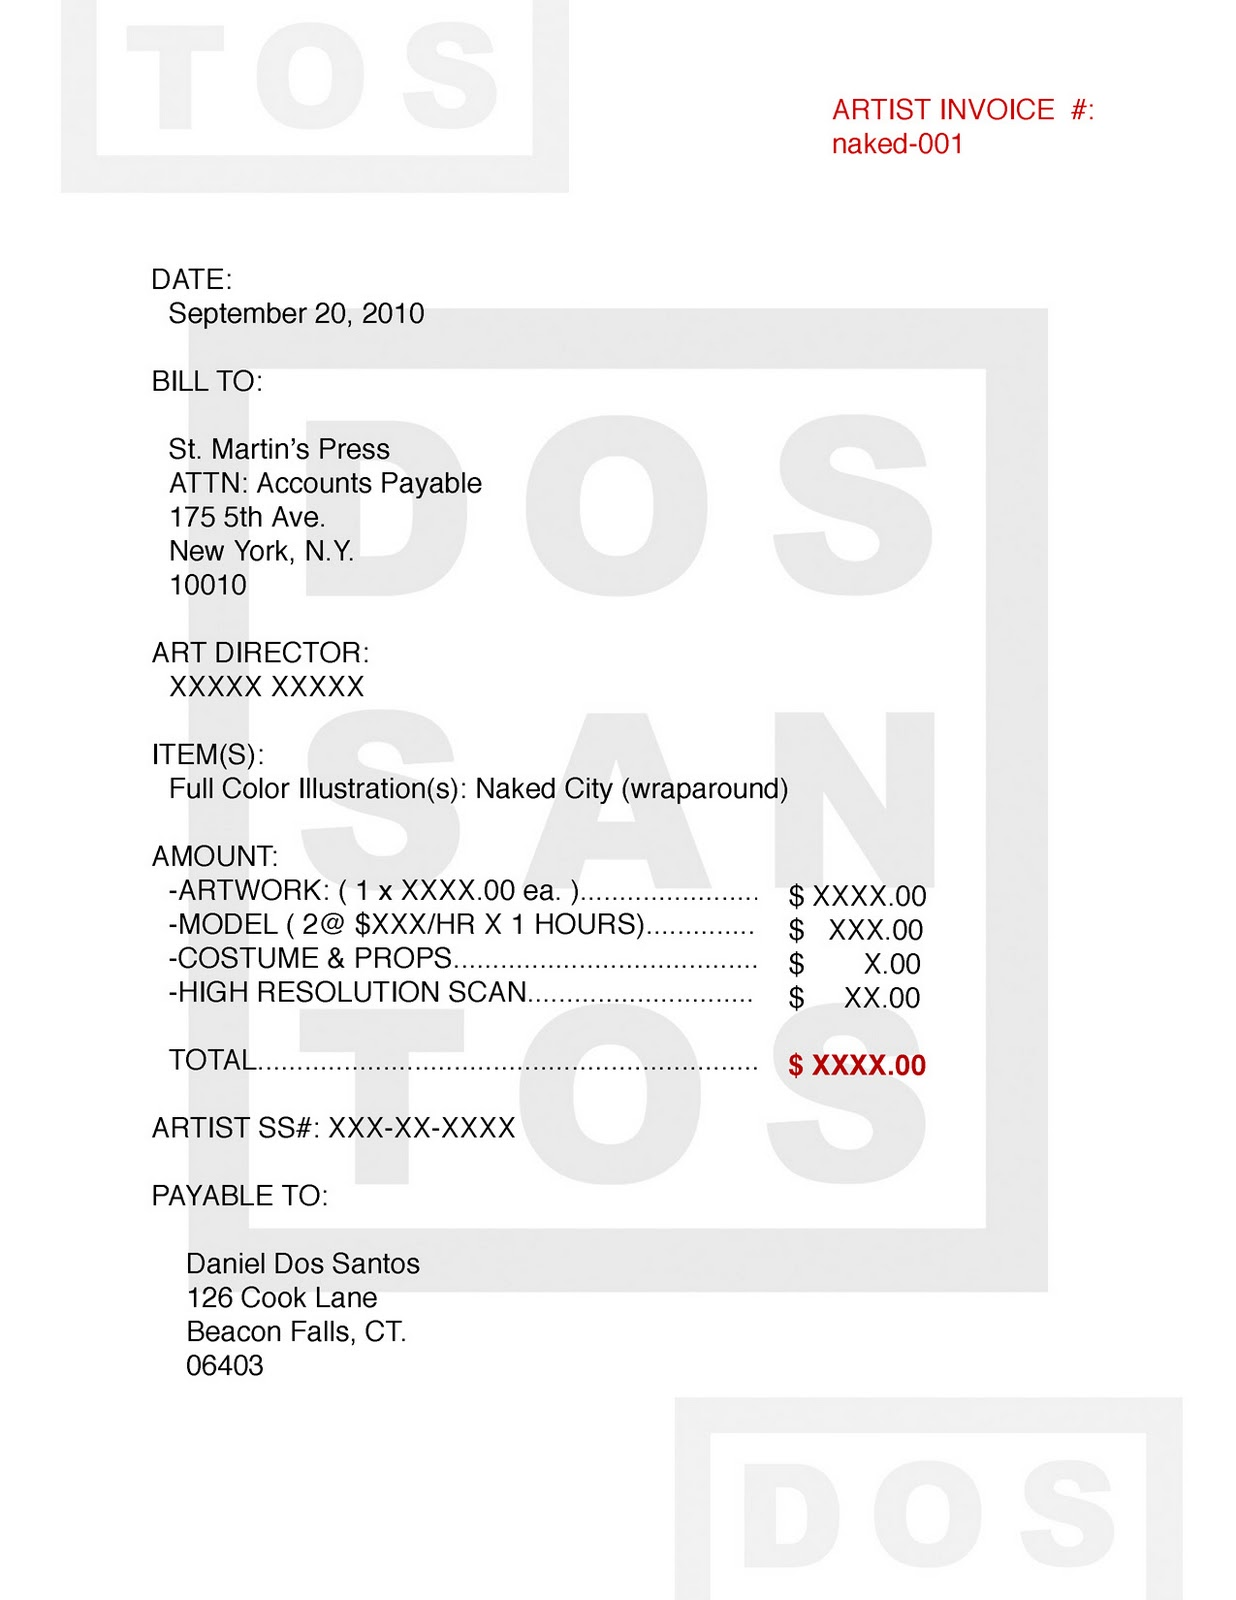 Proatmealus  Pretty Muddy Colors Invoices With Interesting I Believe That This Format Contains All The Pertinent Information That A Good Invoice Should Have And Can Serve As A Decent Template For Your Own With Delightful Toyota Highlander Invoice Price Also Lawn Care Invoice Template In Addition Freight Invoice And Create Invoice Free As Well As Send Invoices Additionally Invoice Wave From Muddycolorsblogspotcom With Proatmealus  Interesting Muddy Colors Invoices With Delightful I Believe That This Format Contains All The Pertinent Information That A Good Invoice Should Have And Can Serve As A Decent Template For Your Own And Pretty Toyota Highlander Invoice Price Also Lawn Care Invoice Template In Addition Freight Invoice From Muddycolorsblogspotcom